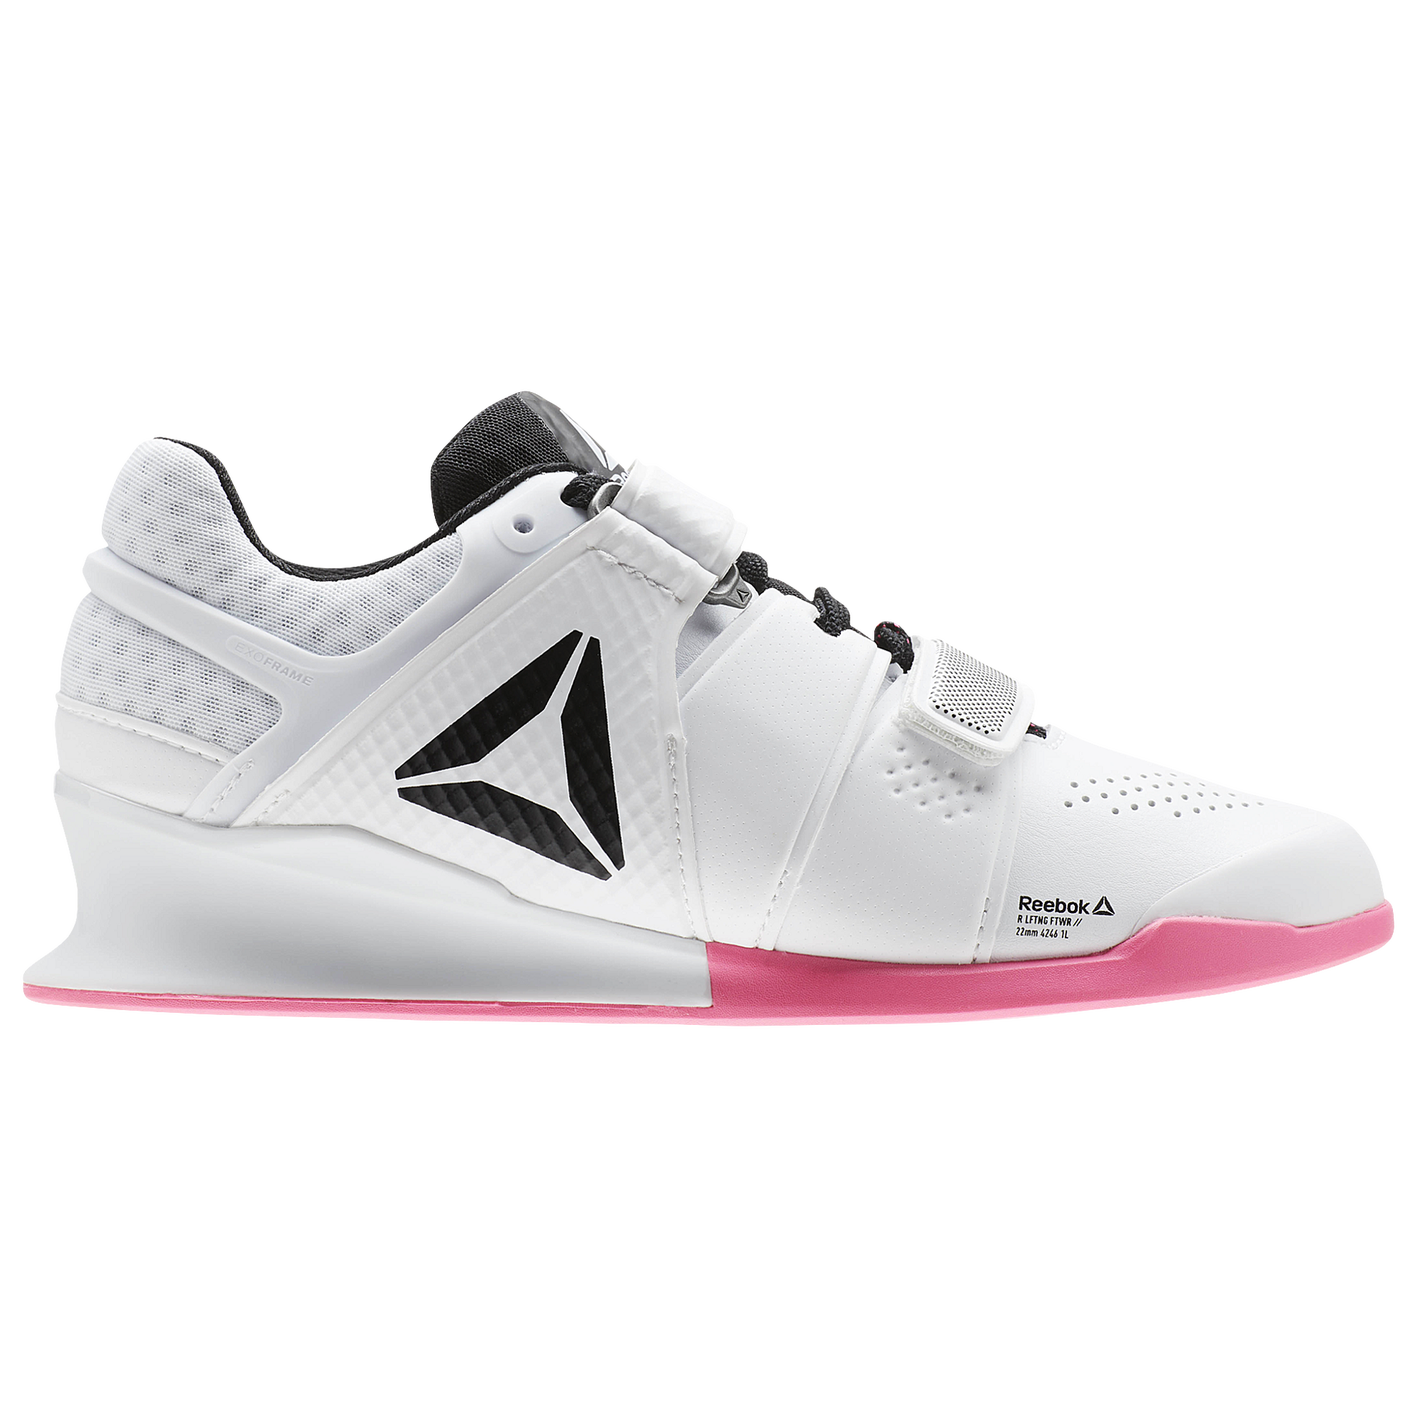 Reebok Legacy Lifter - Women s - Training - Shoes - White Black Acid ... 26c96fc43